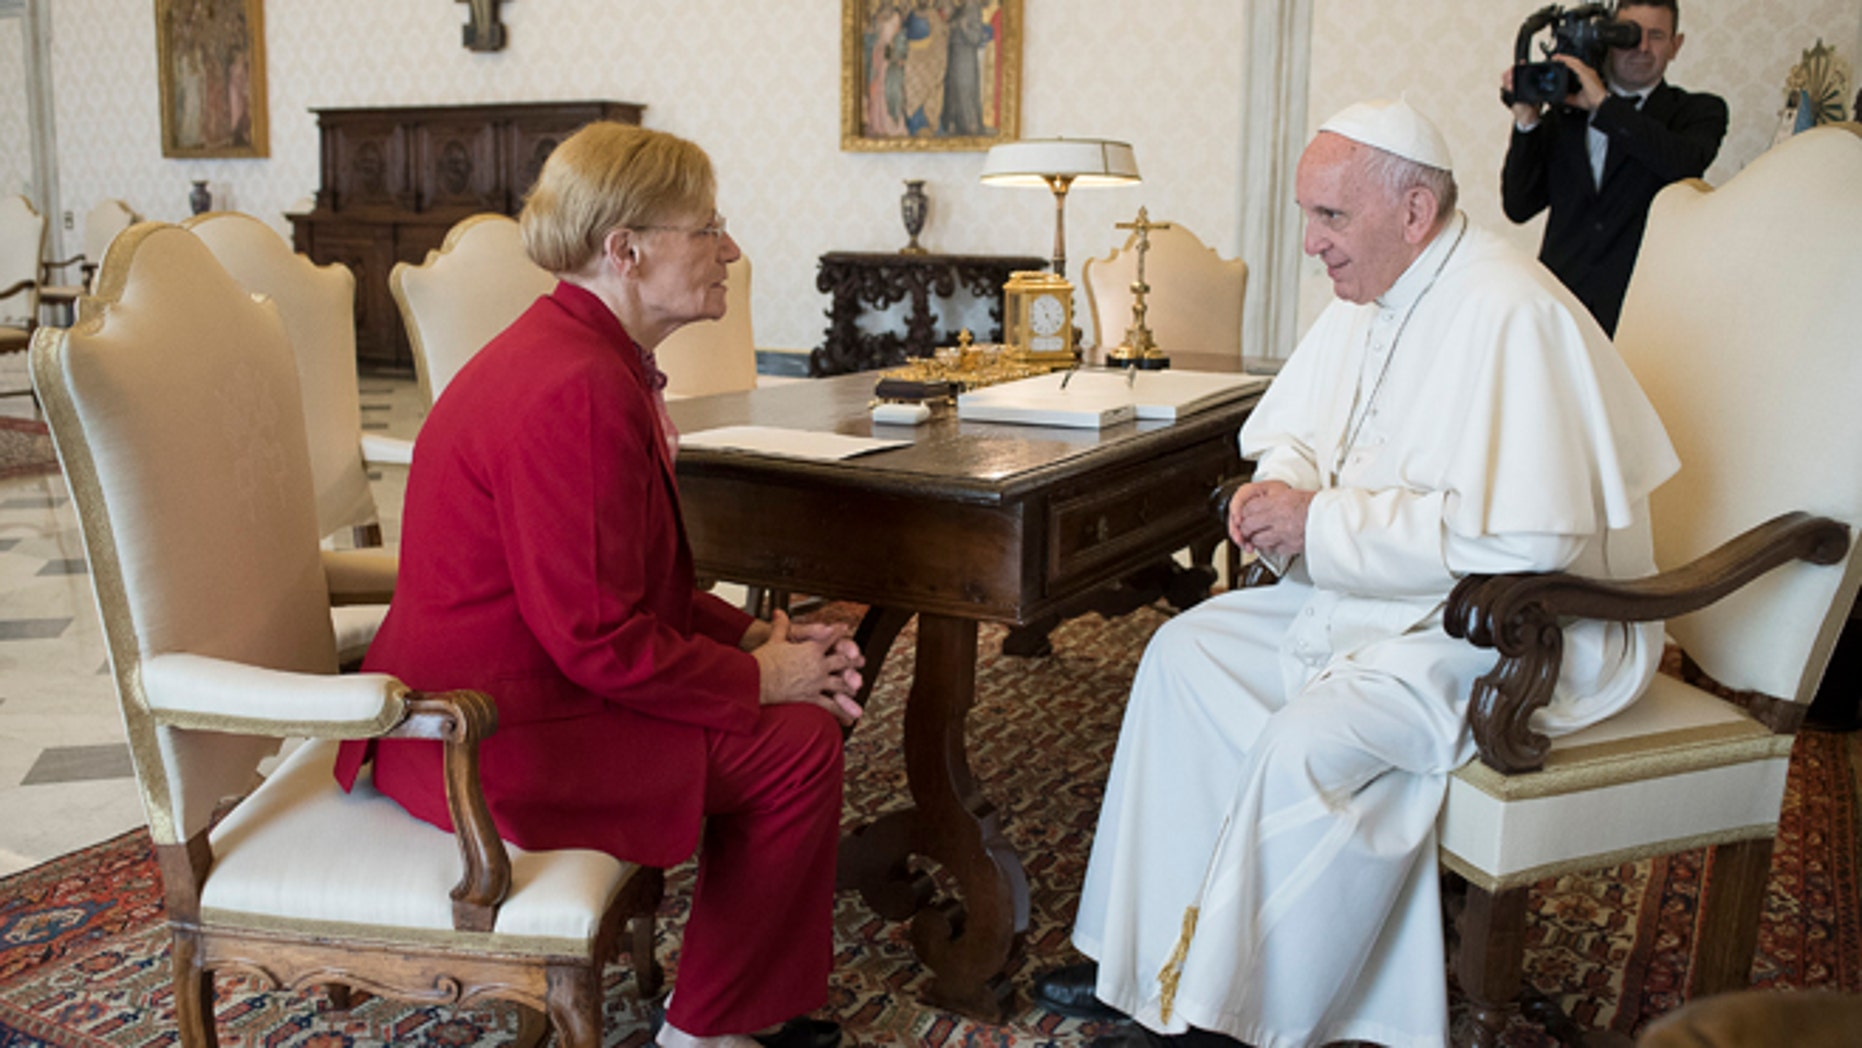 Pope Francis talks with Lidia Guerrero,  the Argentine mother of a man on death row in Texas for two decades. After their first meeting, in Rome in 2014, she said that the pope, who is also Argentine, assured her of his prayers for Victor Hugo Saldano. (L'Osservatore Romano Pool Photo Via AP)